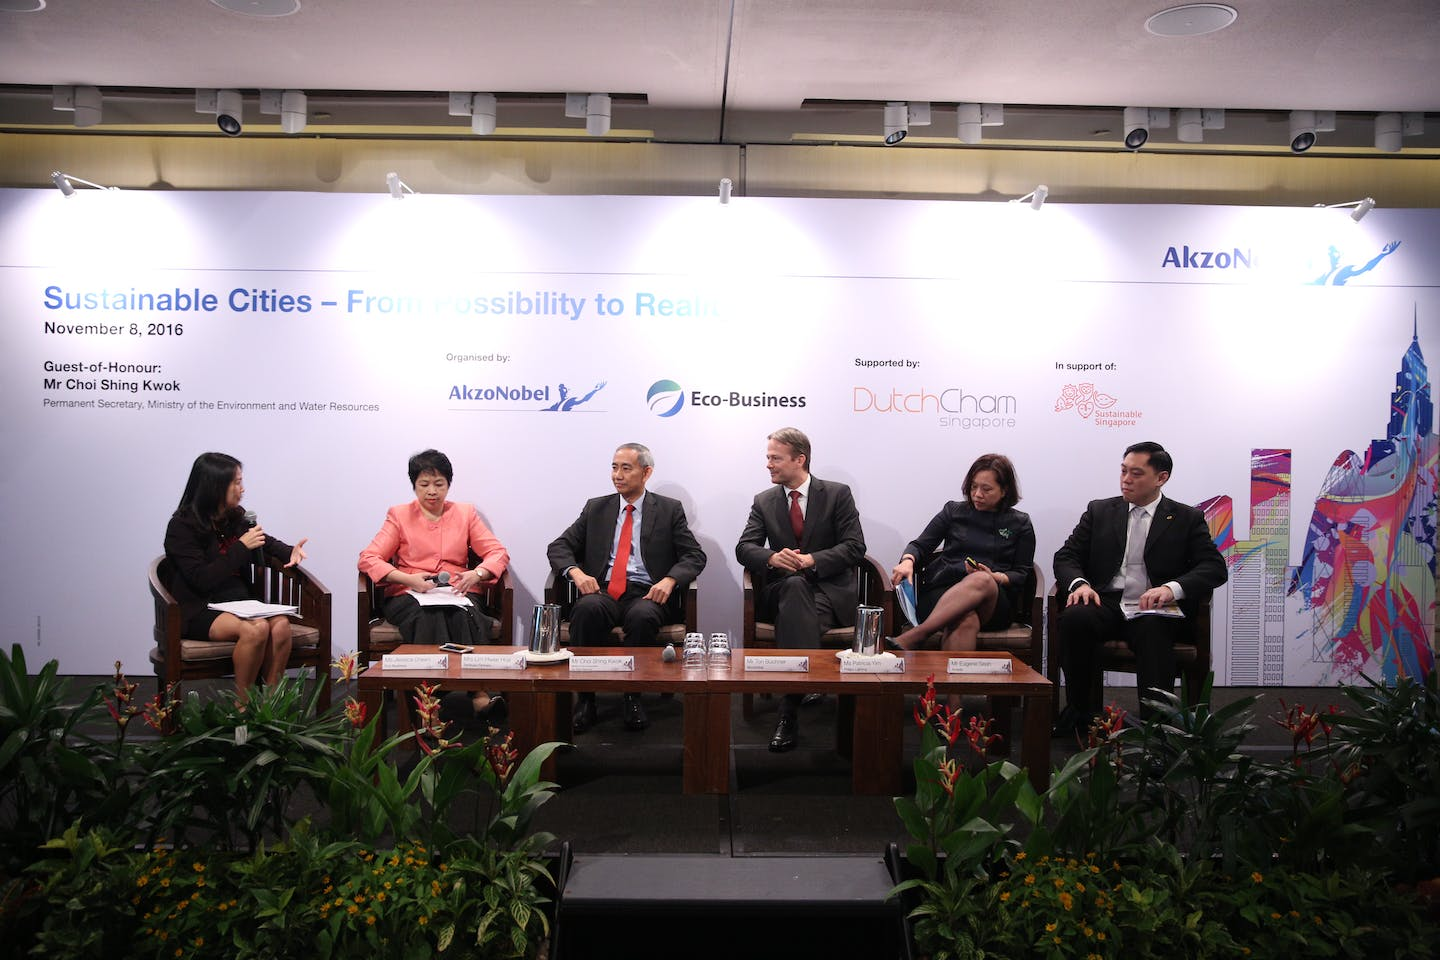 AkzoNobel Cities:Possibilities panel discussion 2016